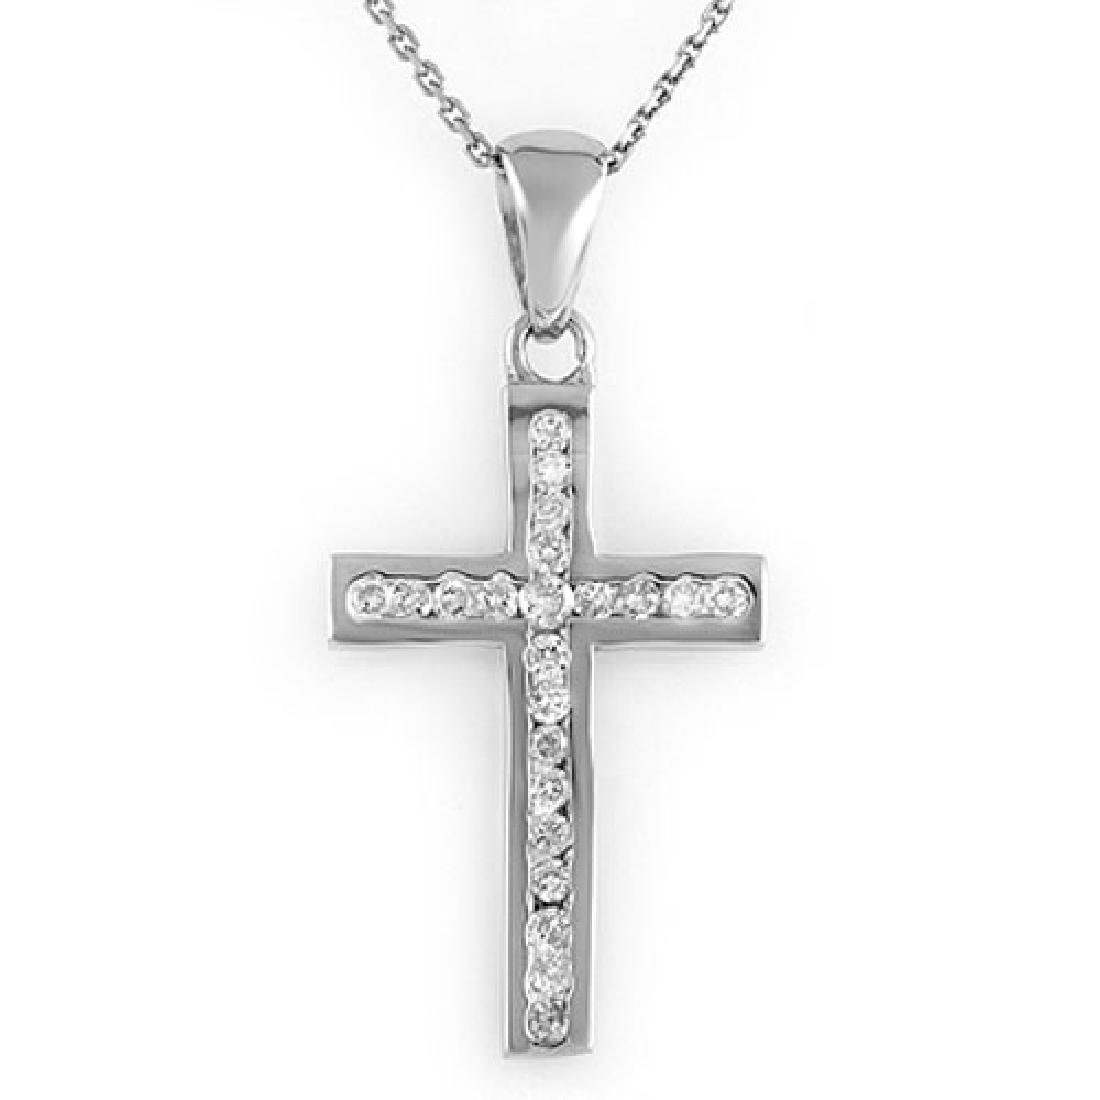 0.50 CTW Certified VS/SI Diamond Necklace 14K White